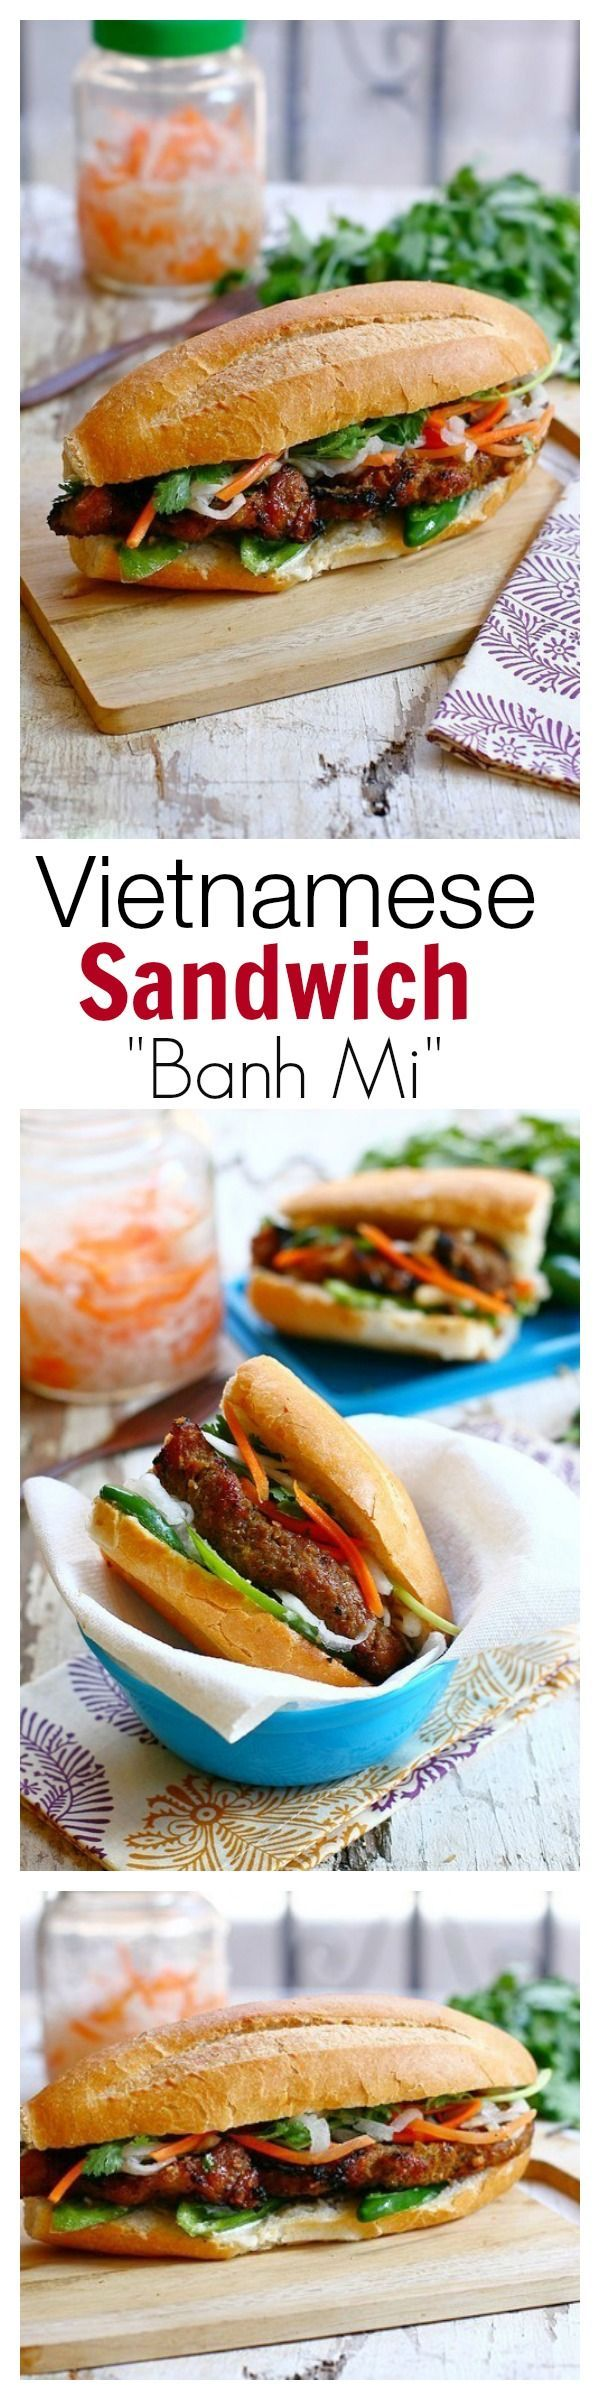 Banh Mi is Vietnamese baguette with grilled meat. Easy banh mi recipe with grilled lemongrass pork and baguette to make the perfect banh mi at home.   rasamalaysia.com